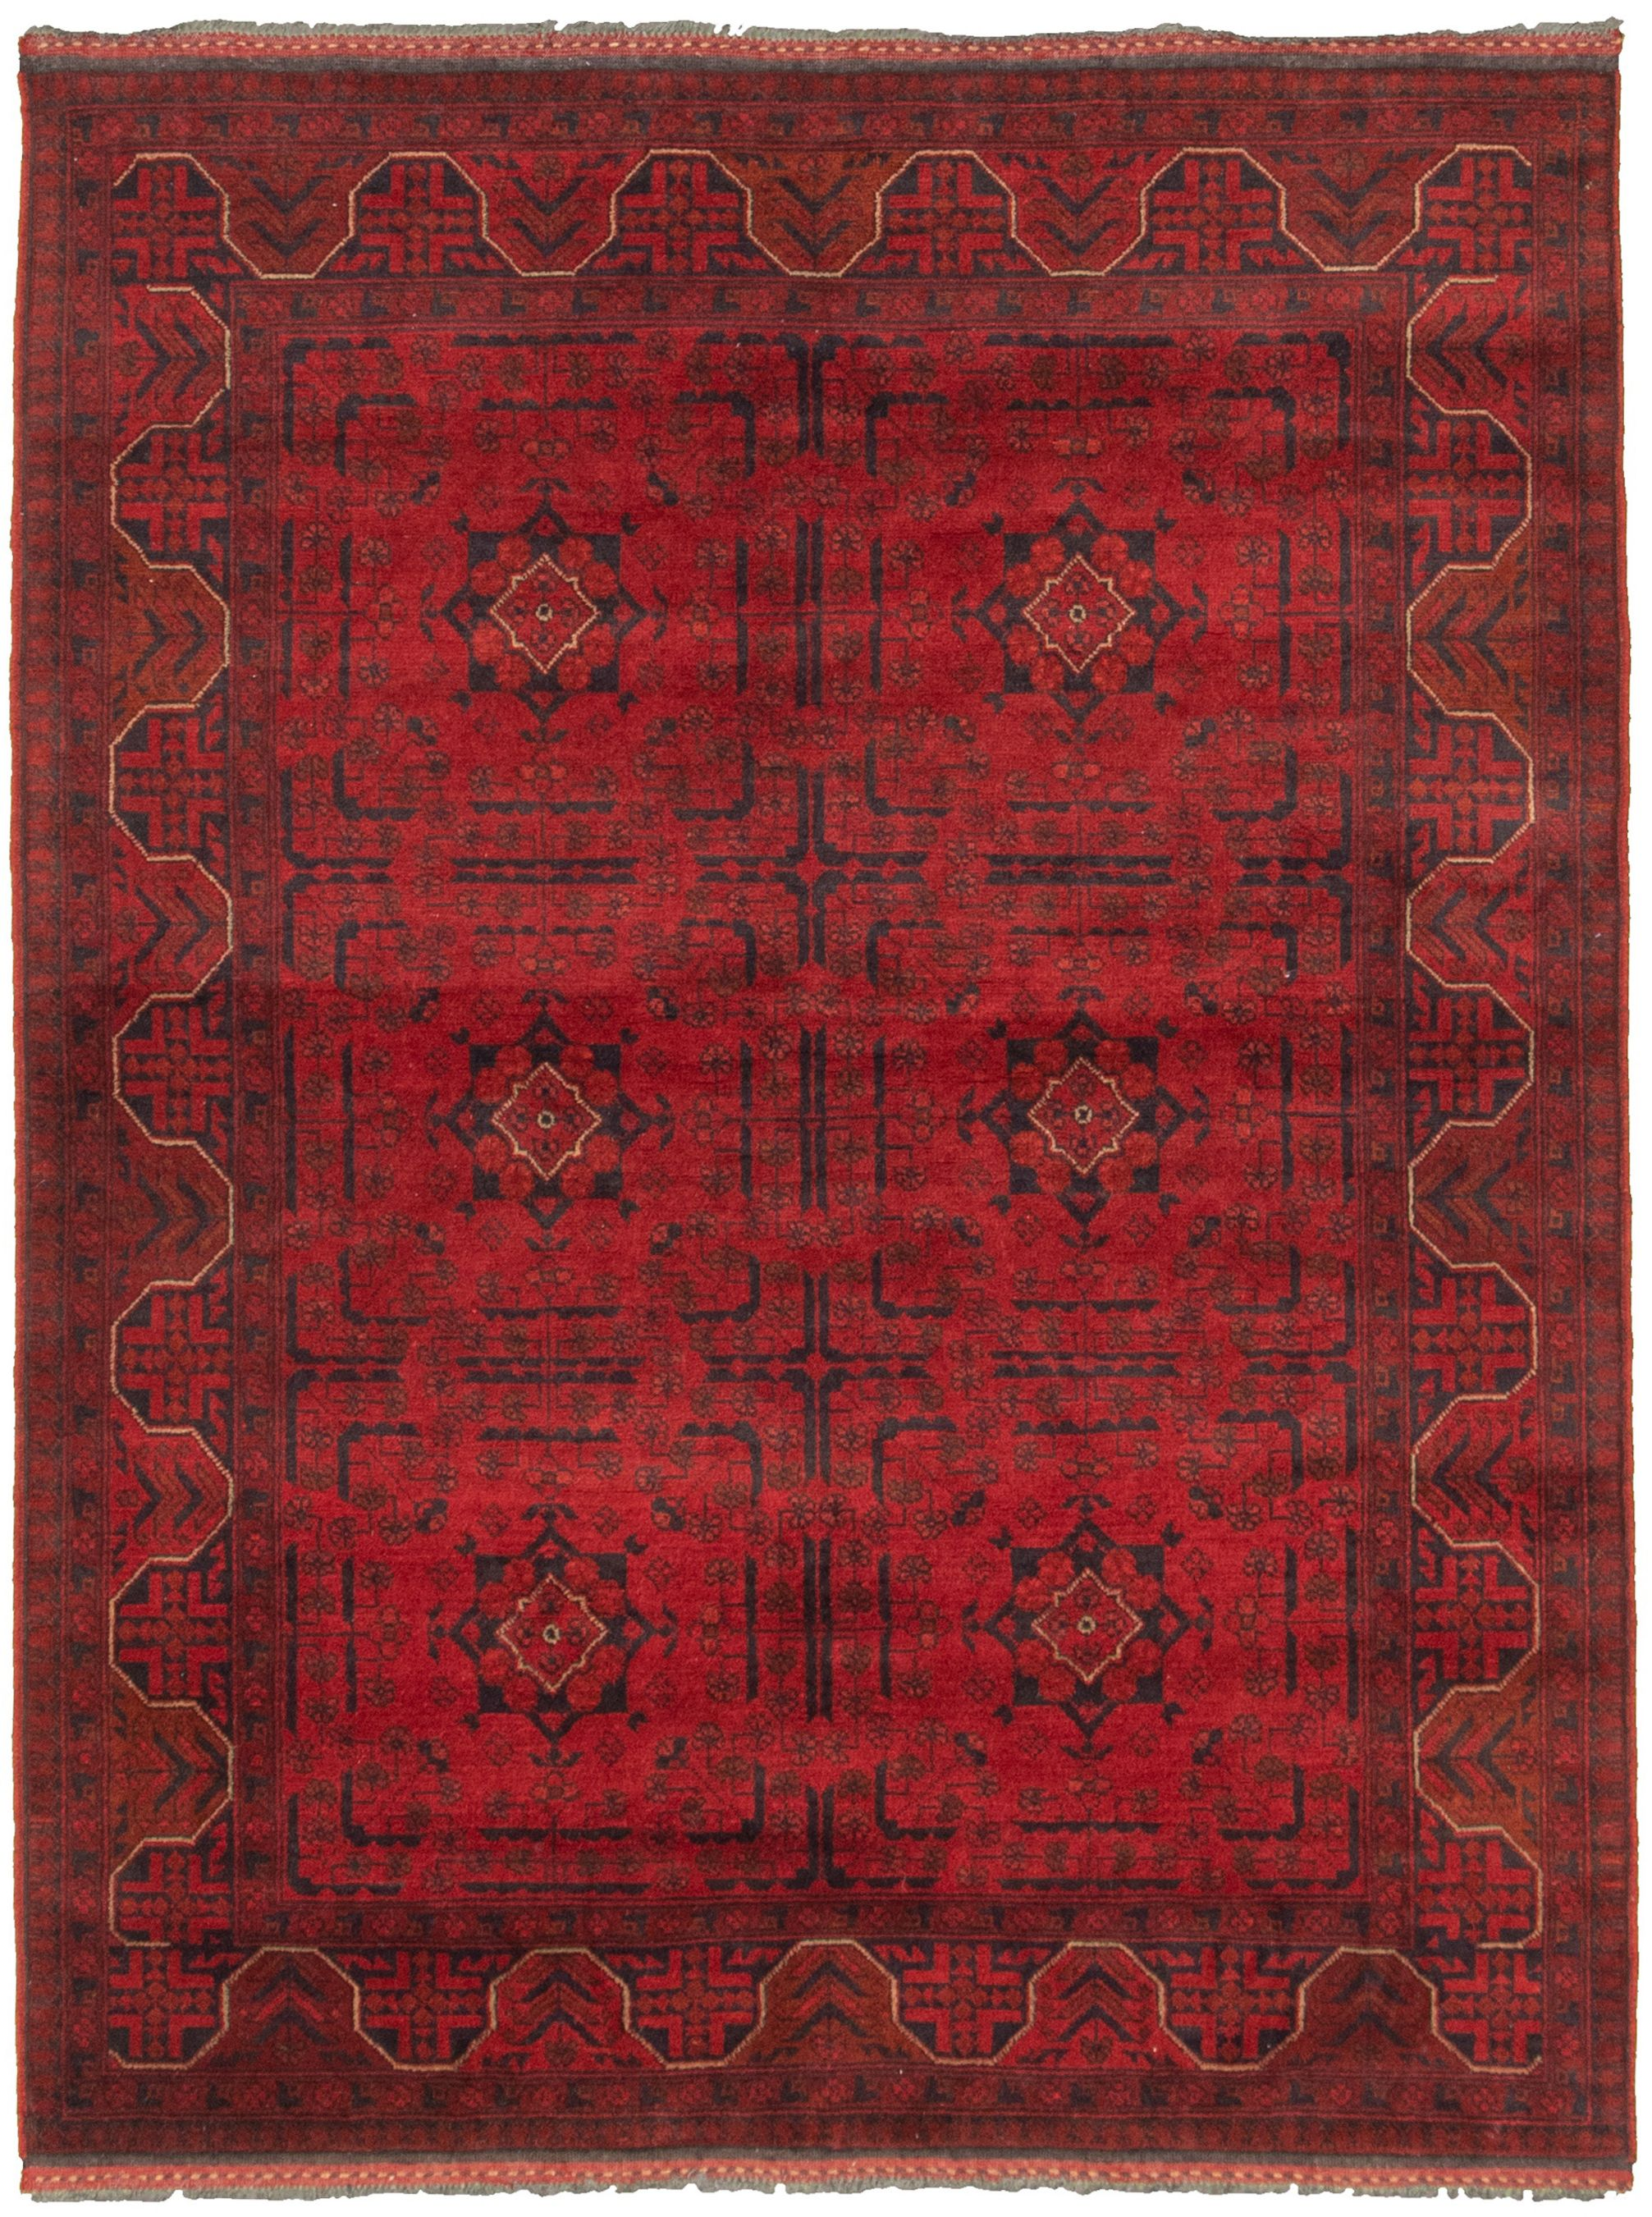 """Hand-knotted Finest Khal Mohammadi Red  Rug 4'11"""" x 6'7""""  Size: 4'11"""" x 6'7"""""""